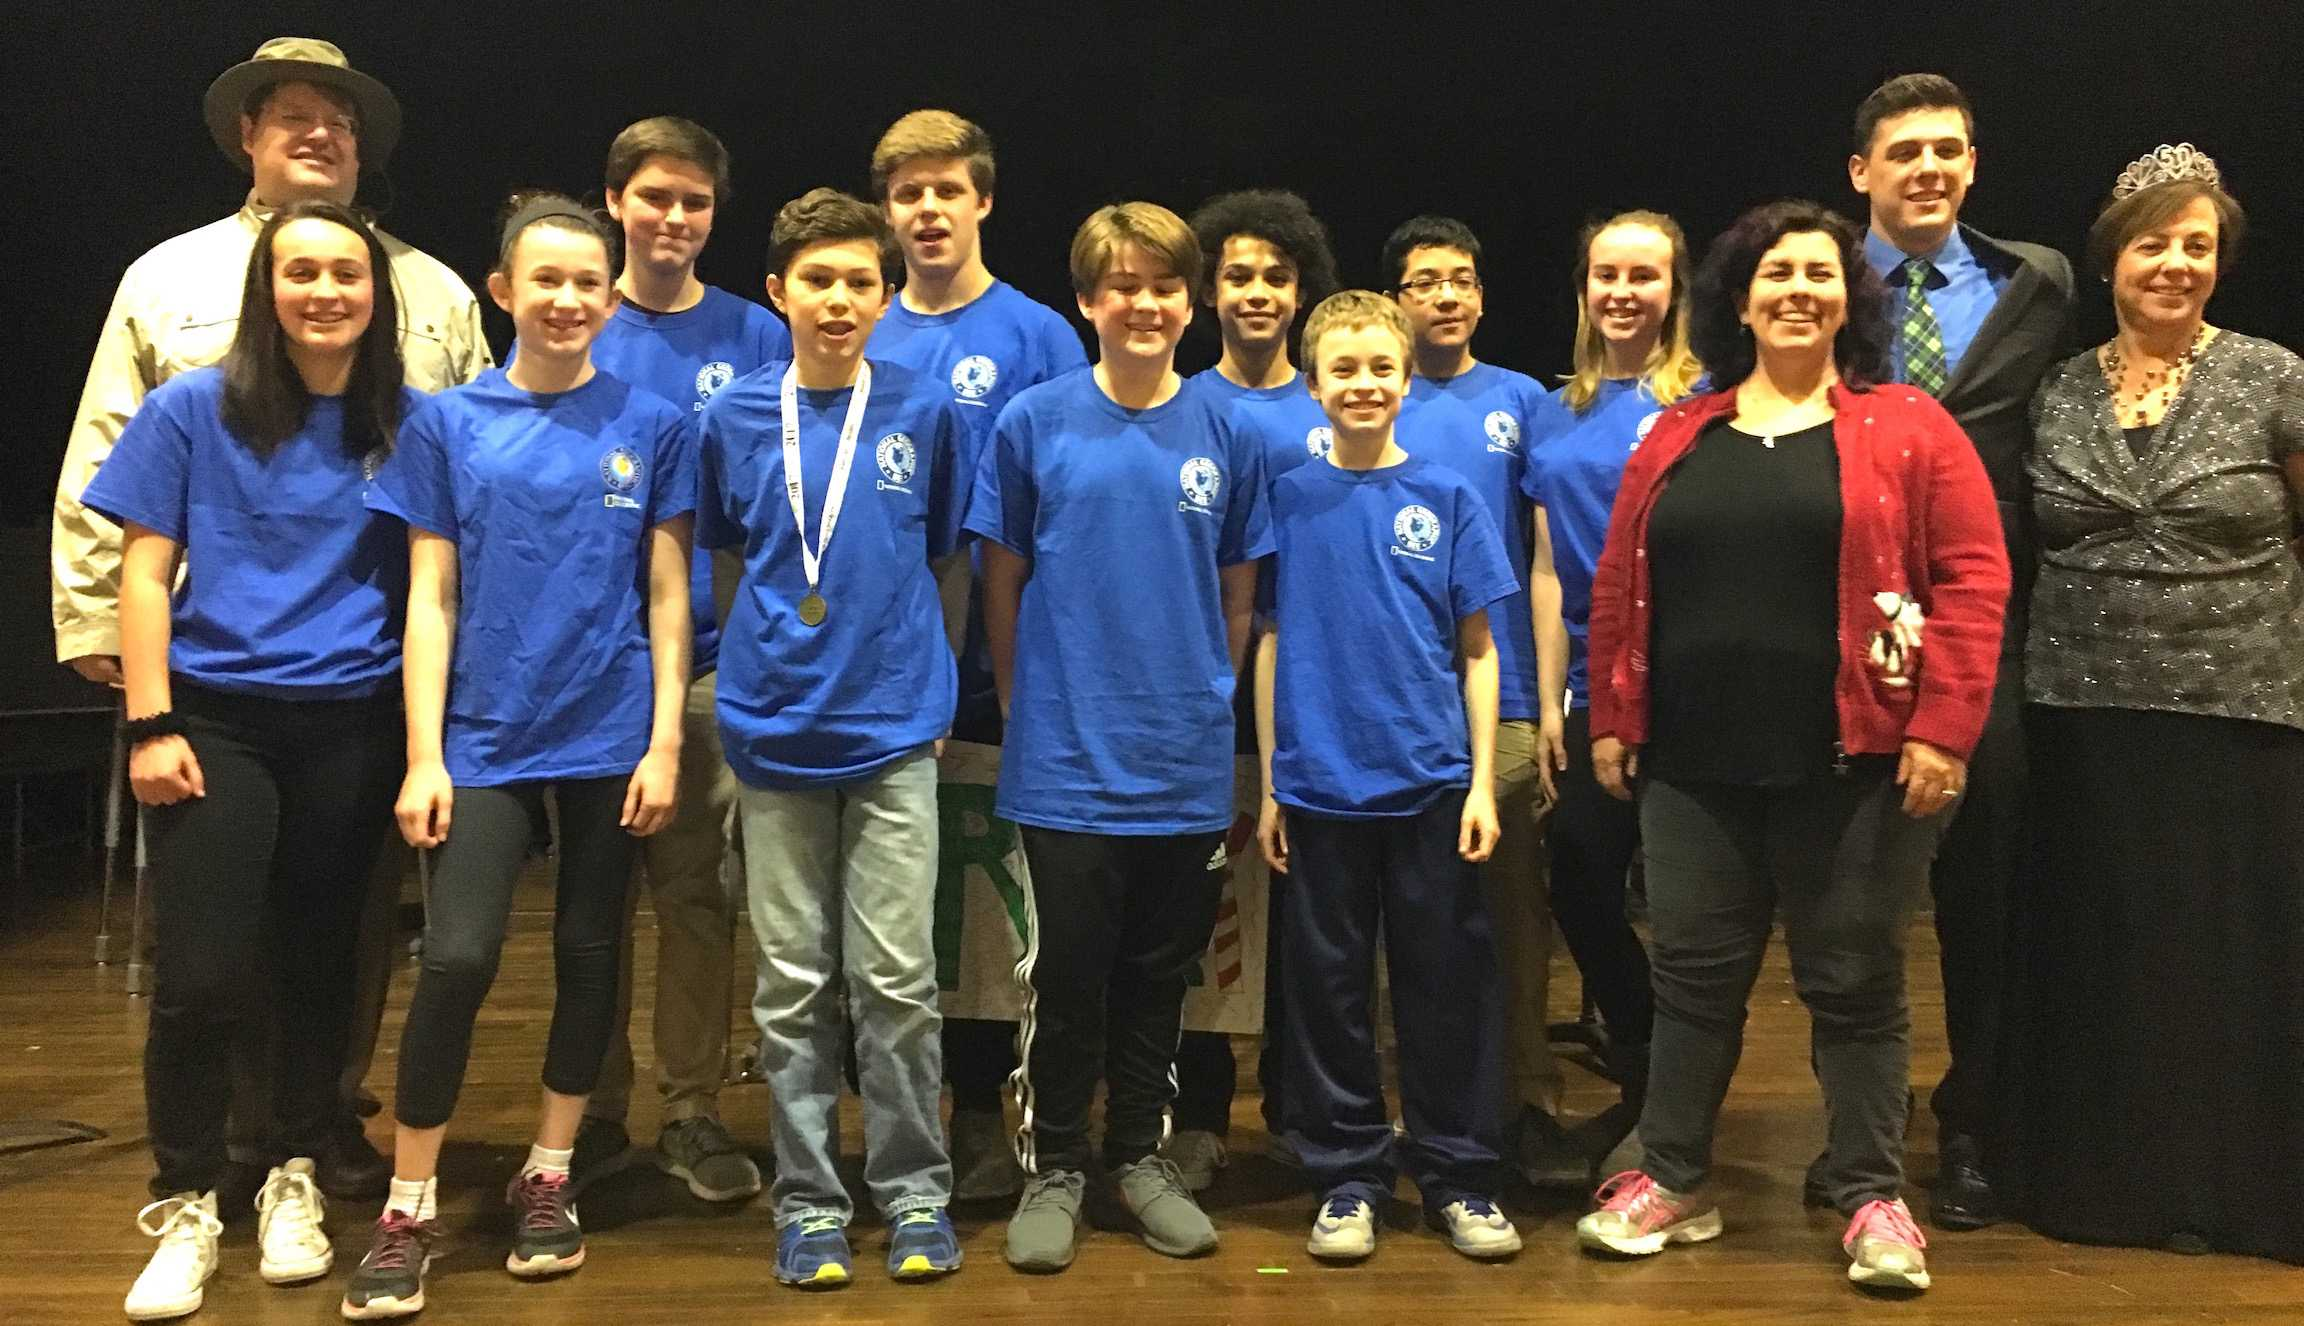 The finalists and organizers pose with Henry Yusem (wearing ribbon and medal) after he won the annual Geography Bee at Watertown Middle School on Dec. 23, 2016.